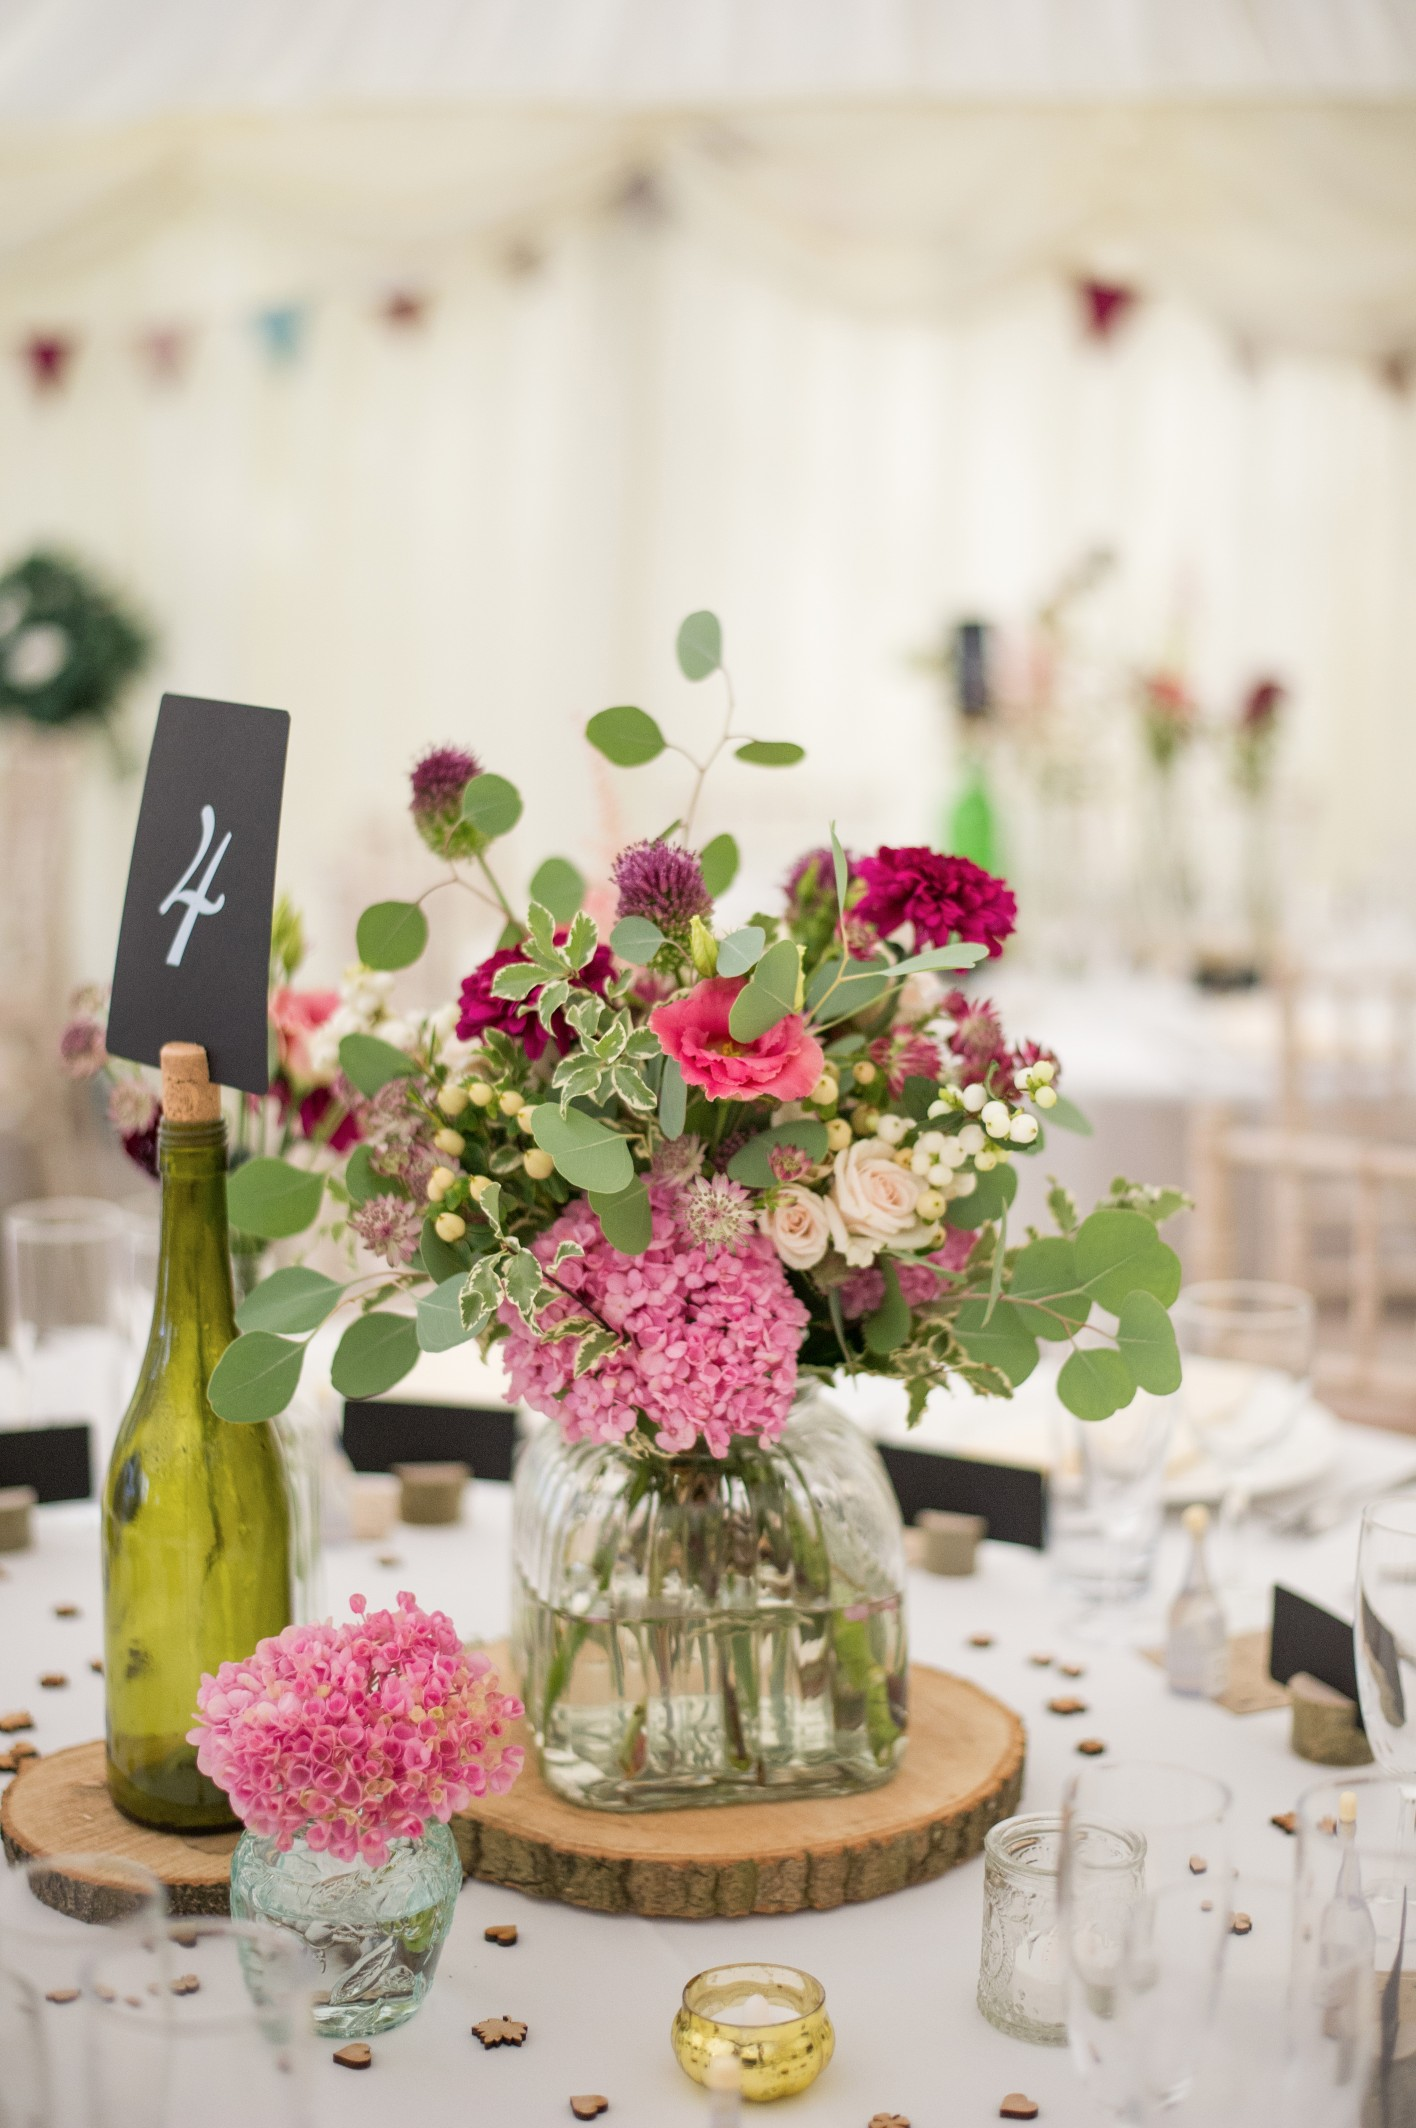 Wedding photography - wedding at Hayne house in Saltwood - table flowers